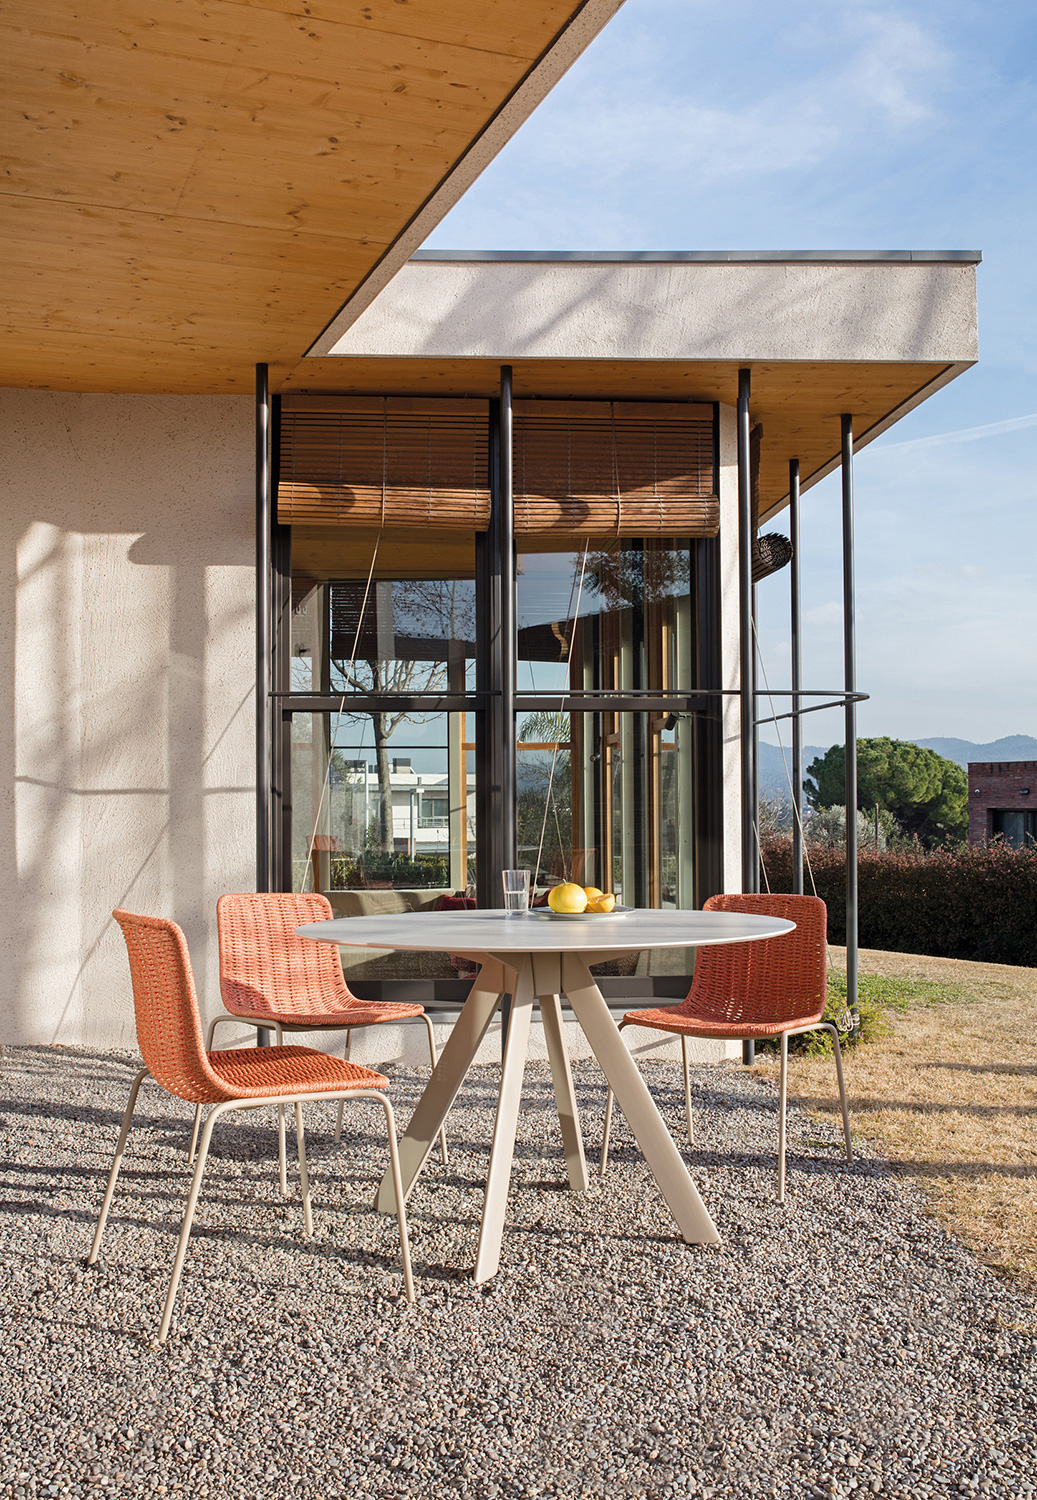 Expormim-furniture-outdoor-atrivm-round-dining-table-120-02